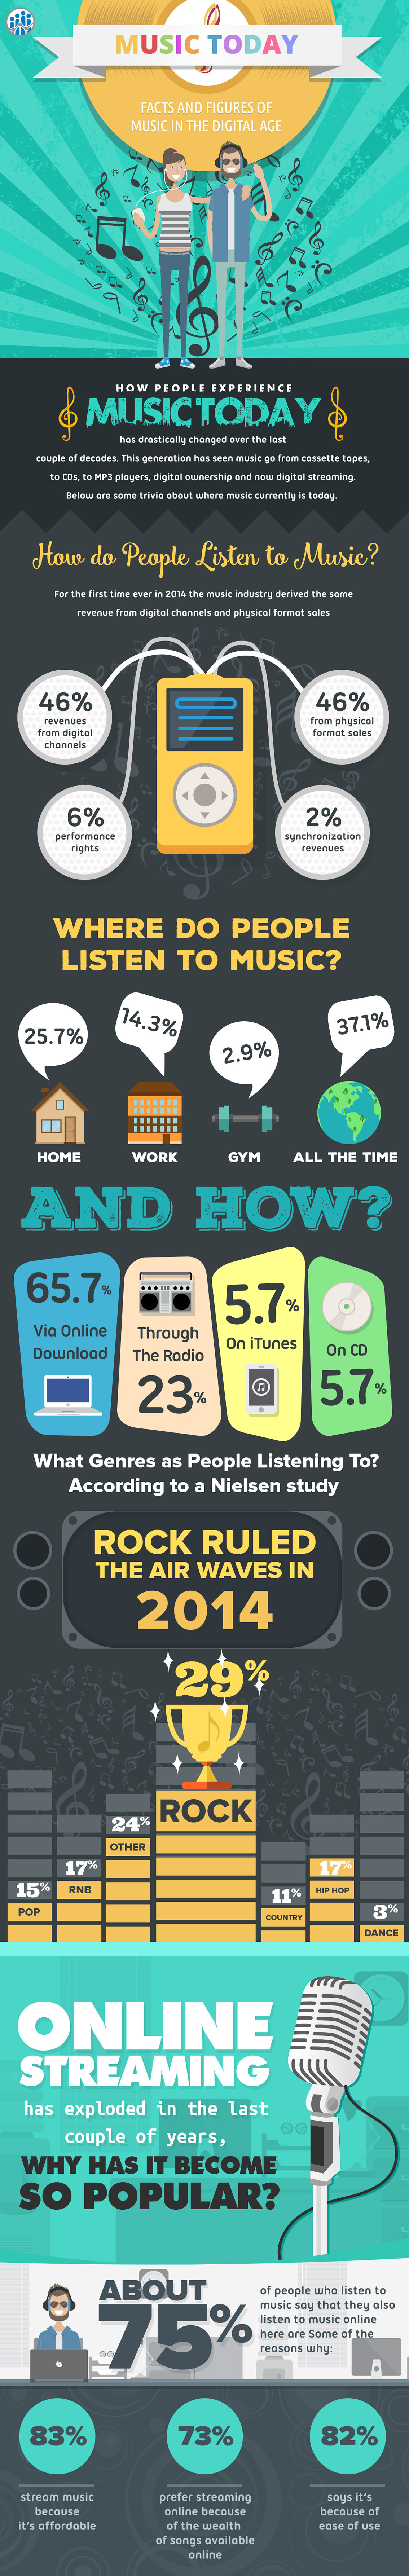 Interesting Facts and Figures of Music in the Digital Age Infographic